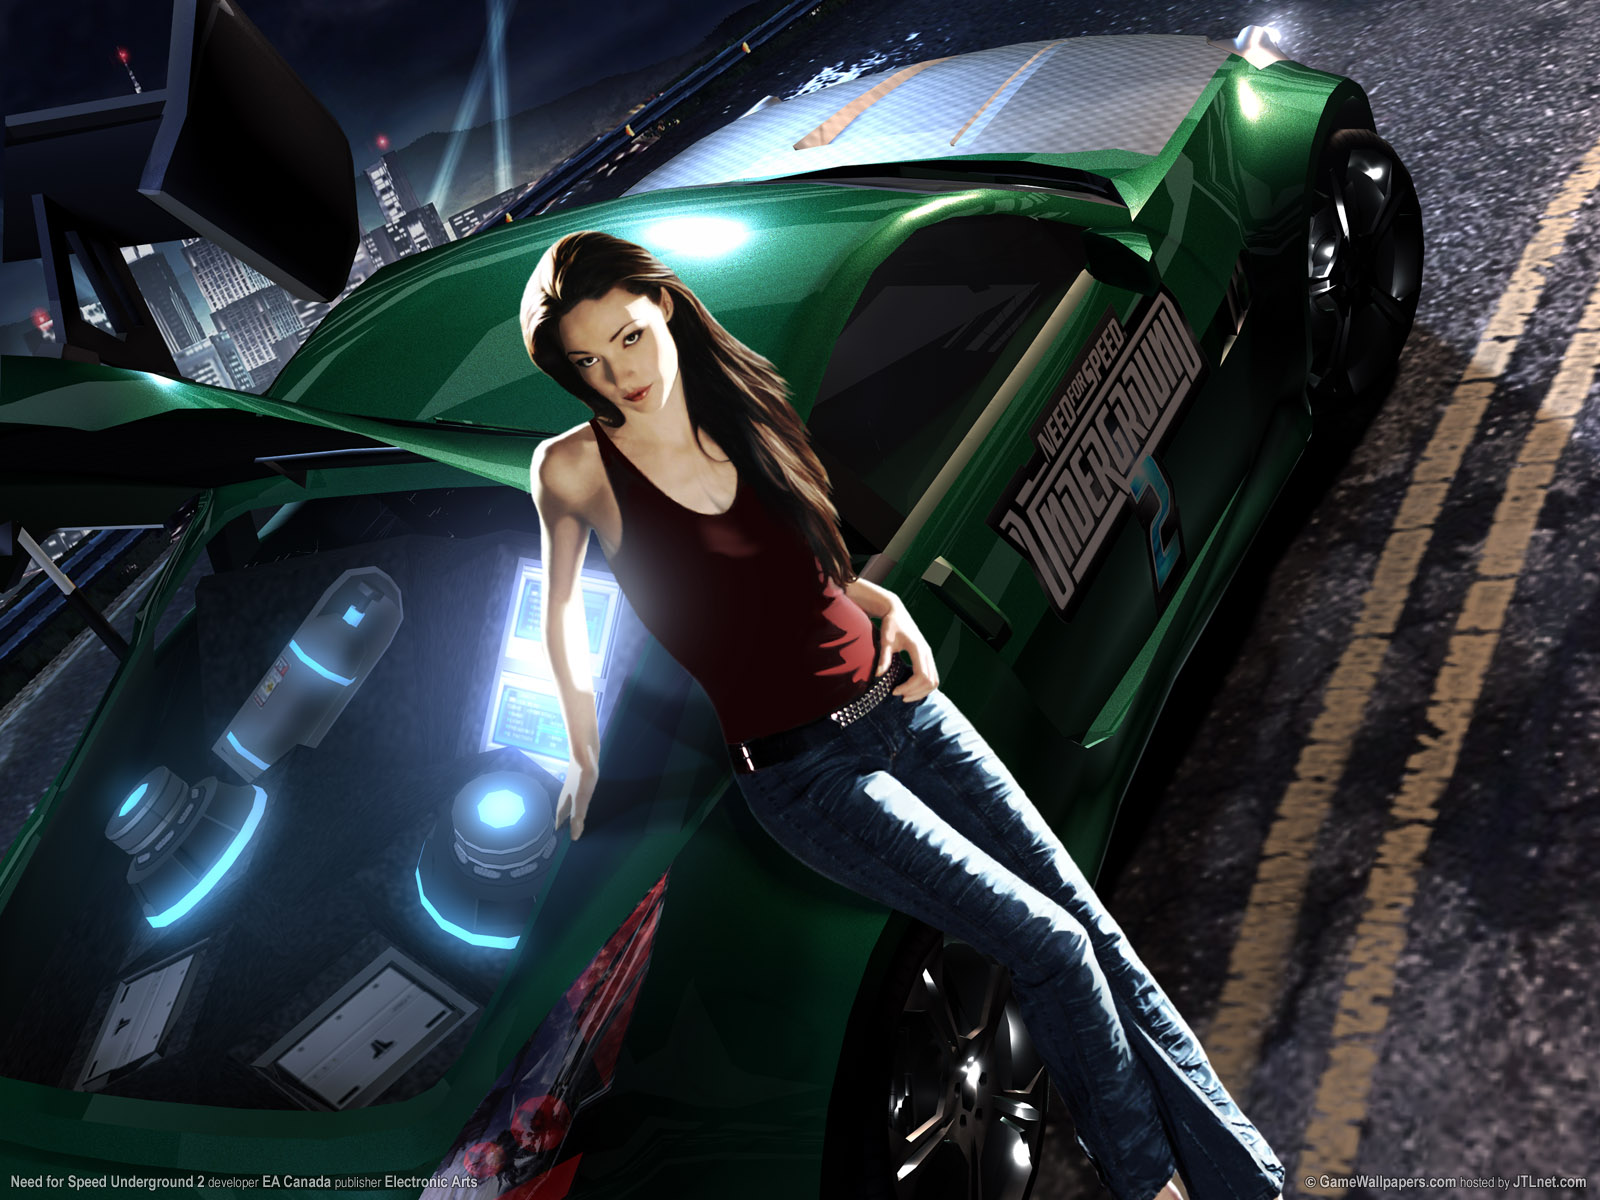 Heavy Bikes And Cars Wallpapers Free Download Need For Speed Hd Girl Wallpapers My Site